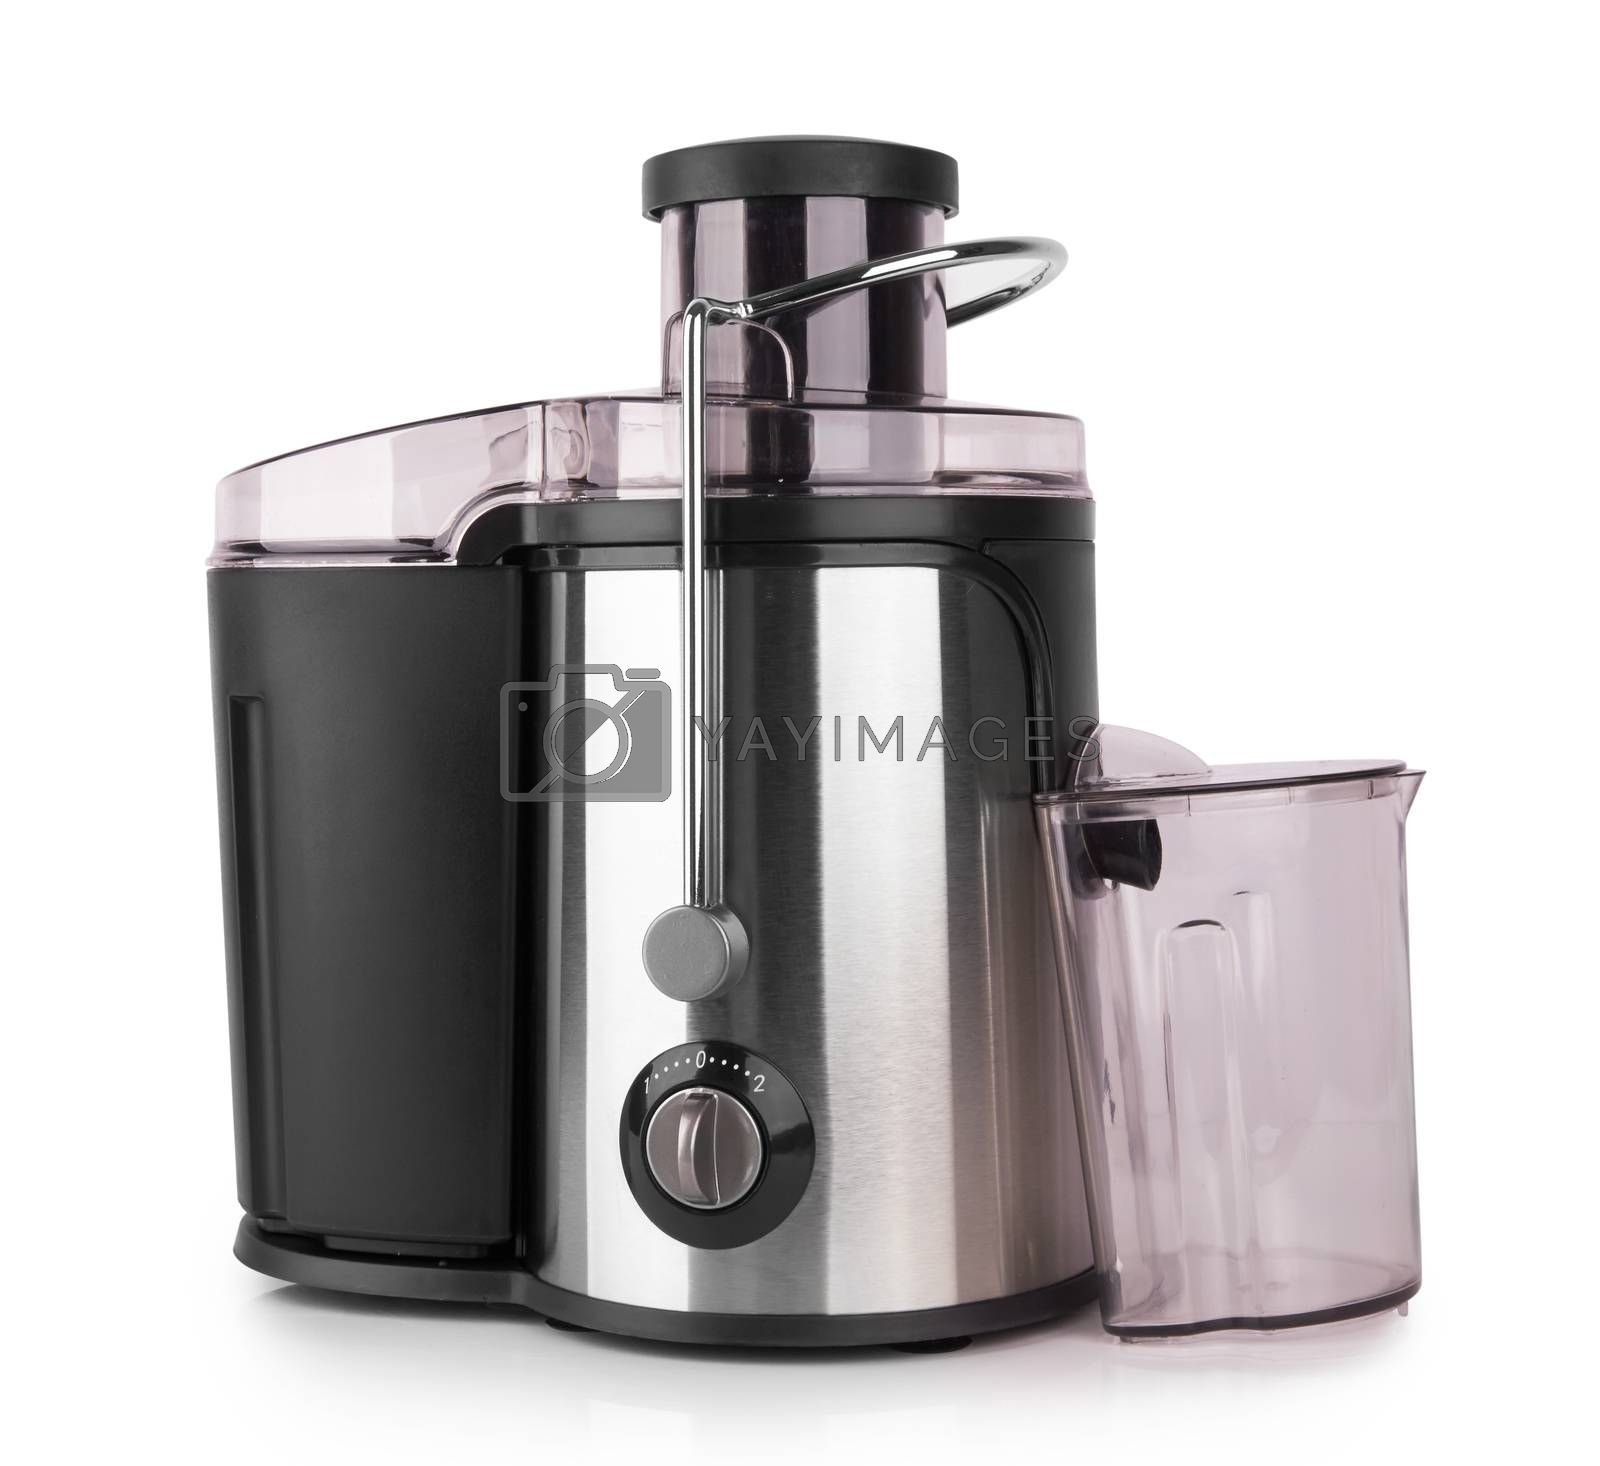 Electric juicer isolated on a white background